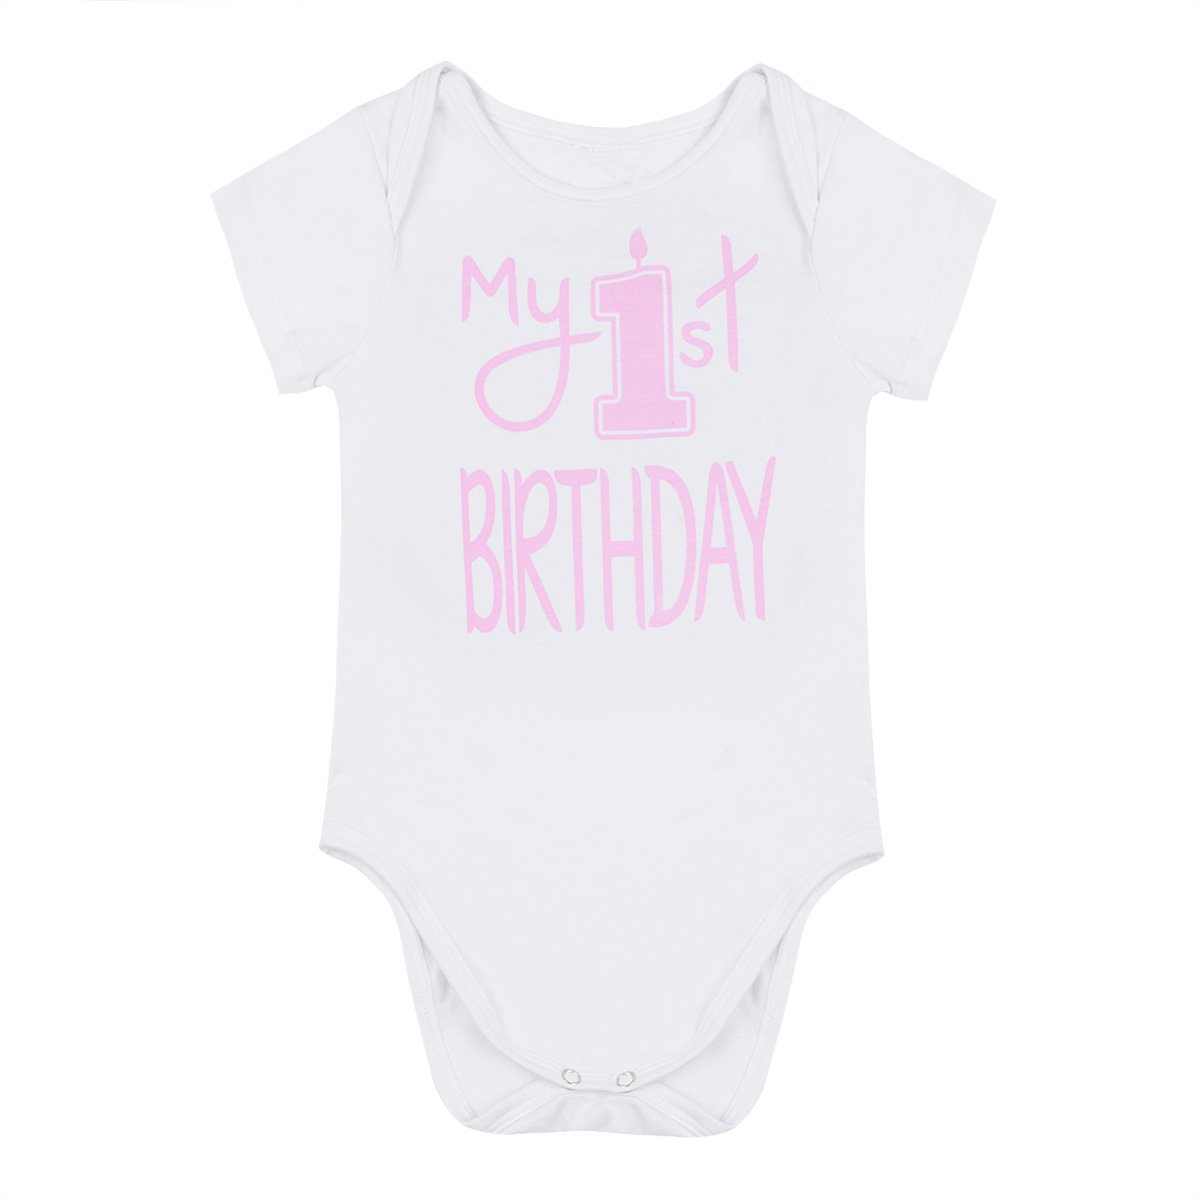 iiniim Infant Baby Boys Short Sleeves One-Piece Outfit My 1st Birthday Romper Bodysuit Jumpsuit Party Clothes